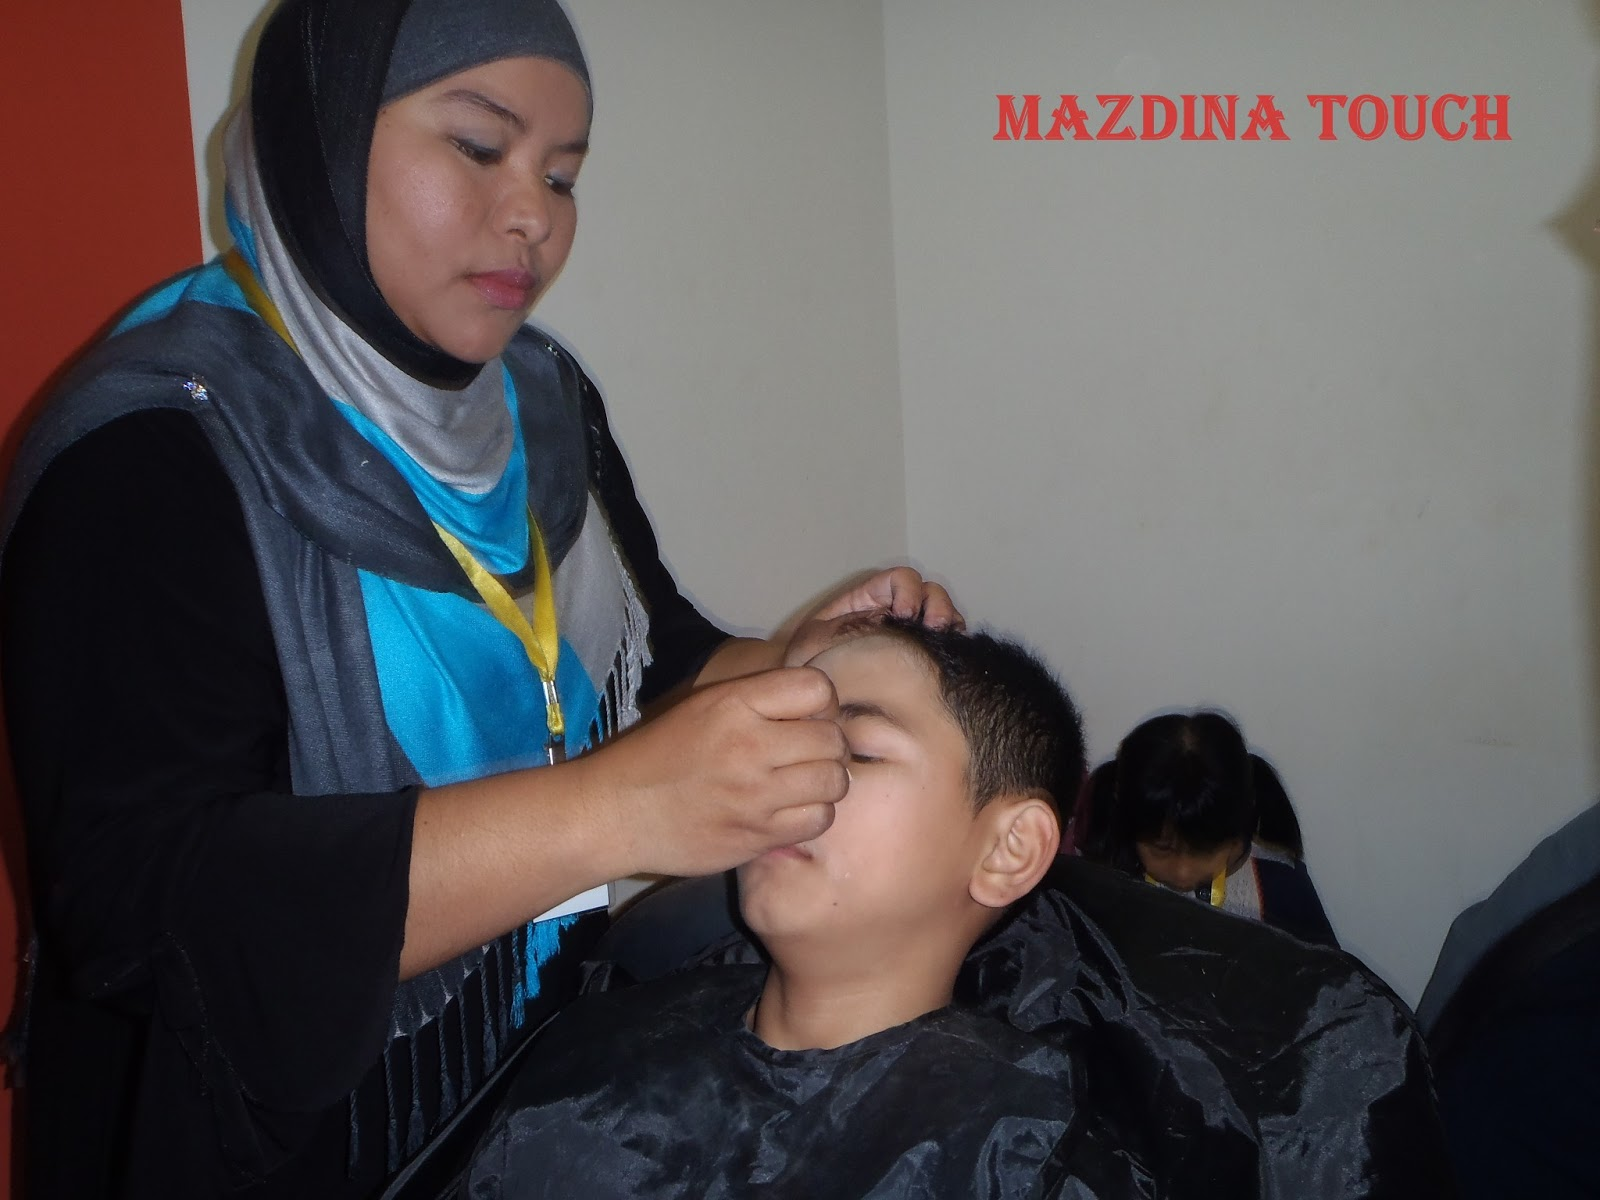 MazDina Touch (Profile): Make up Superstar Final di Astro Ceria